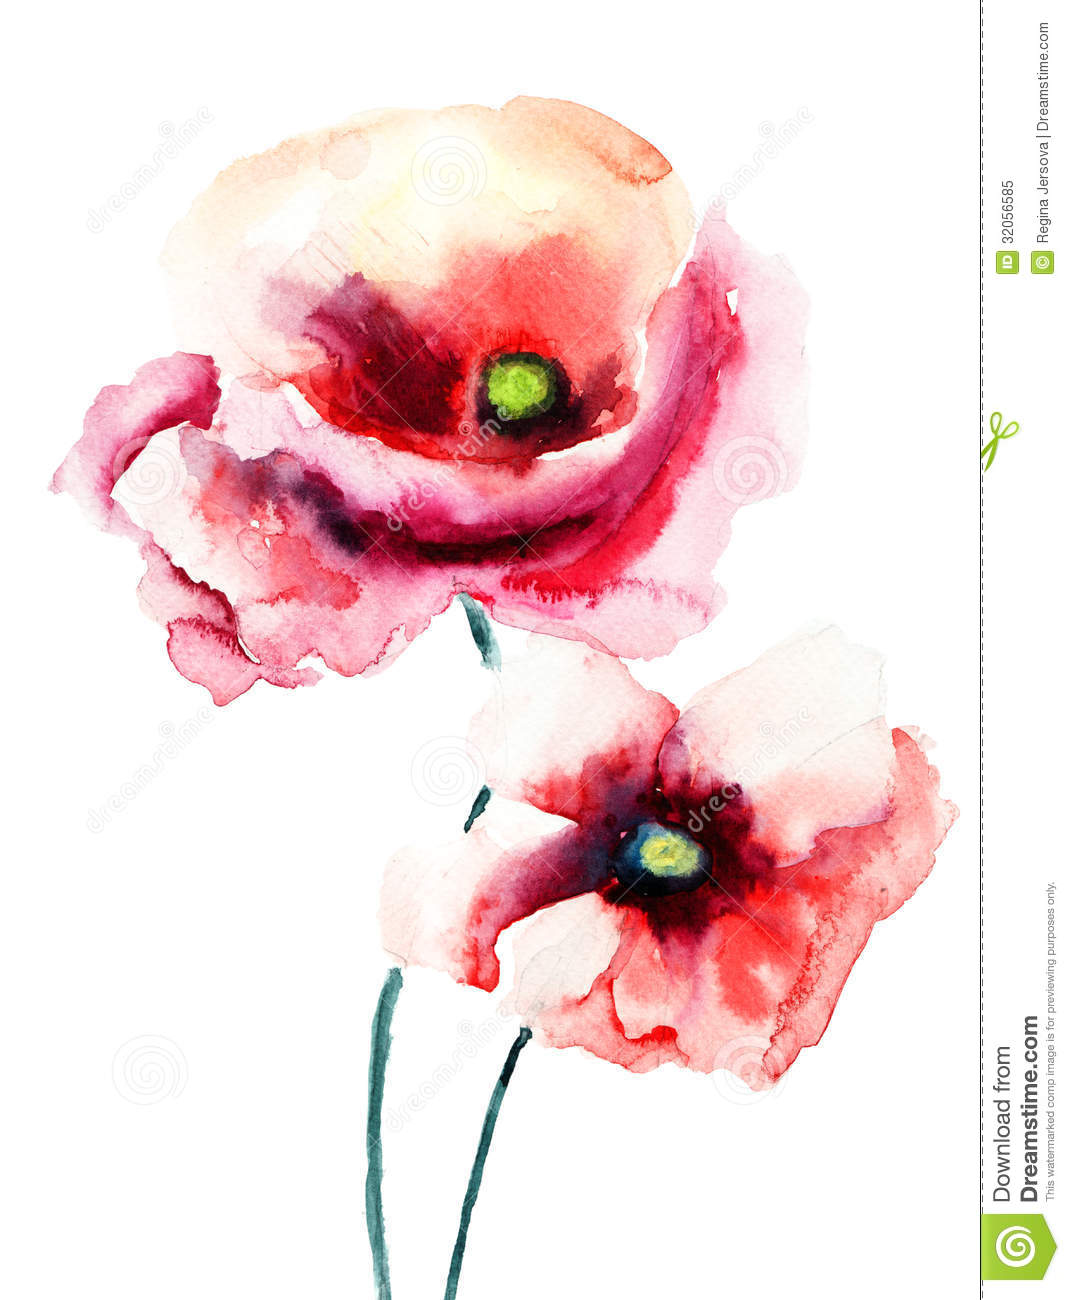 Colorful poppy flowers stock illustration illustration of colorful poppy flowers mightylinksfo